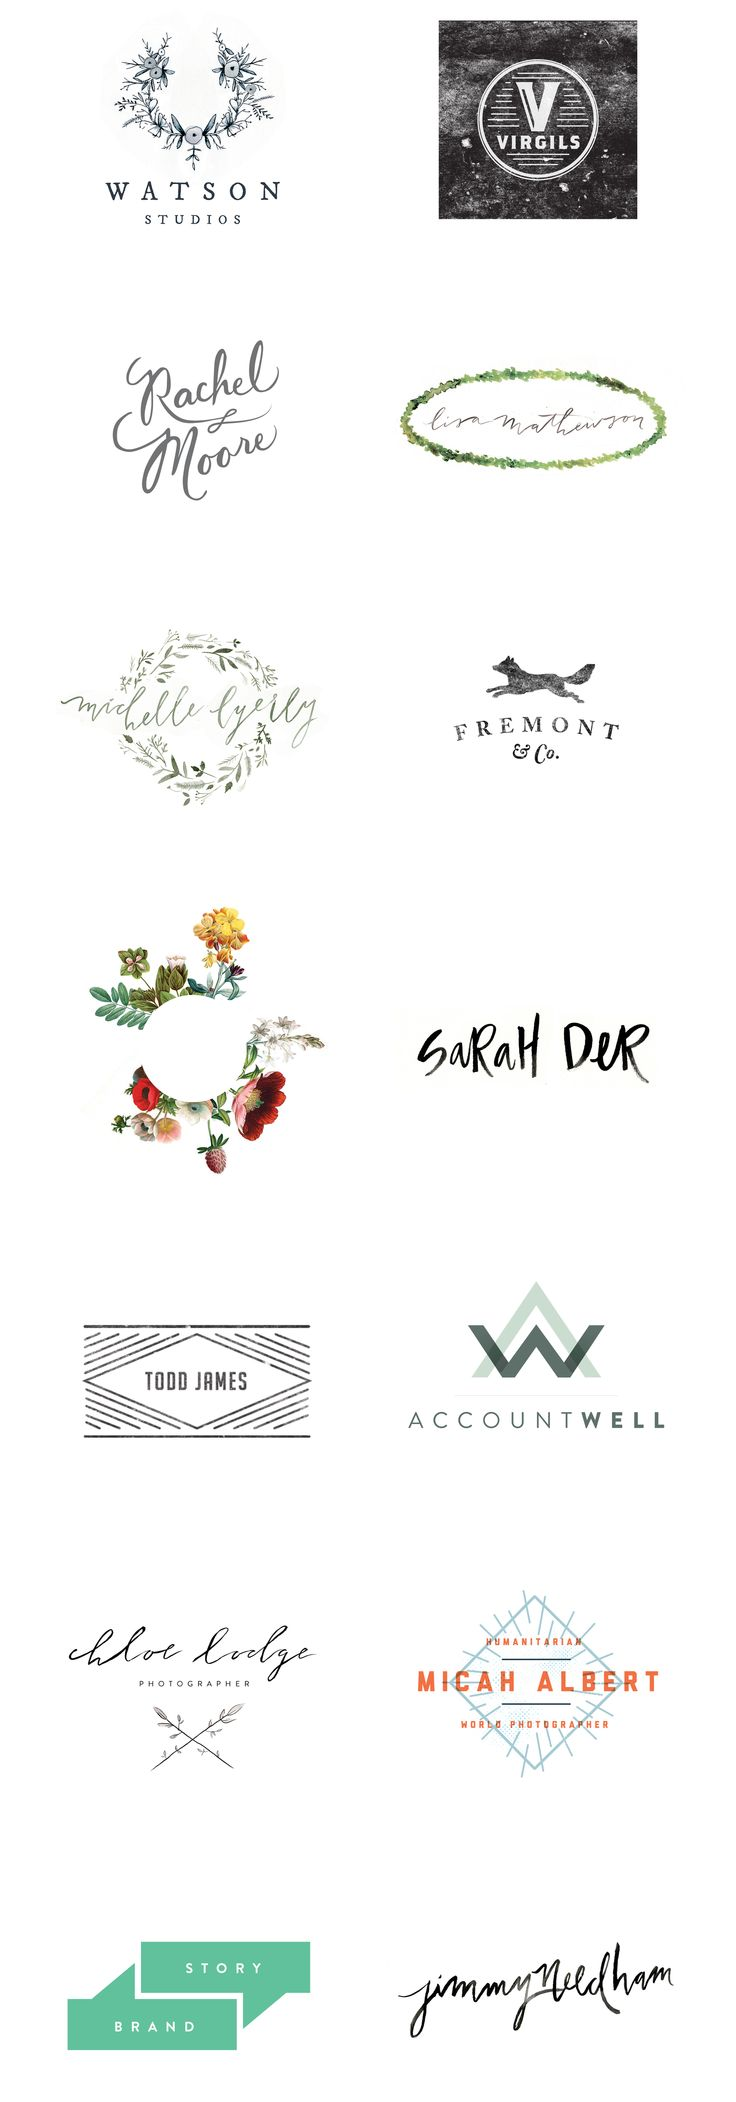 lauren ledbetter design & styling // branding // logos from 2013.